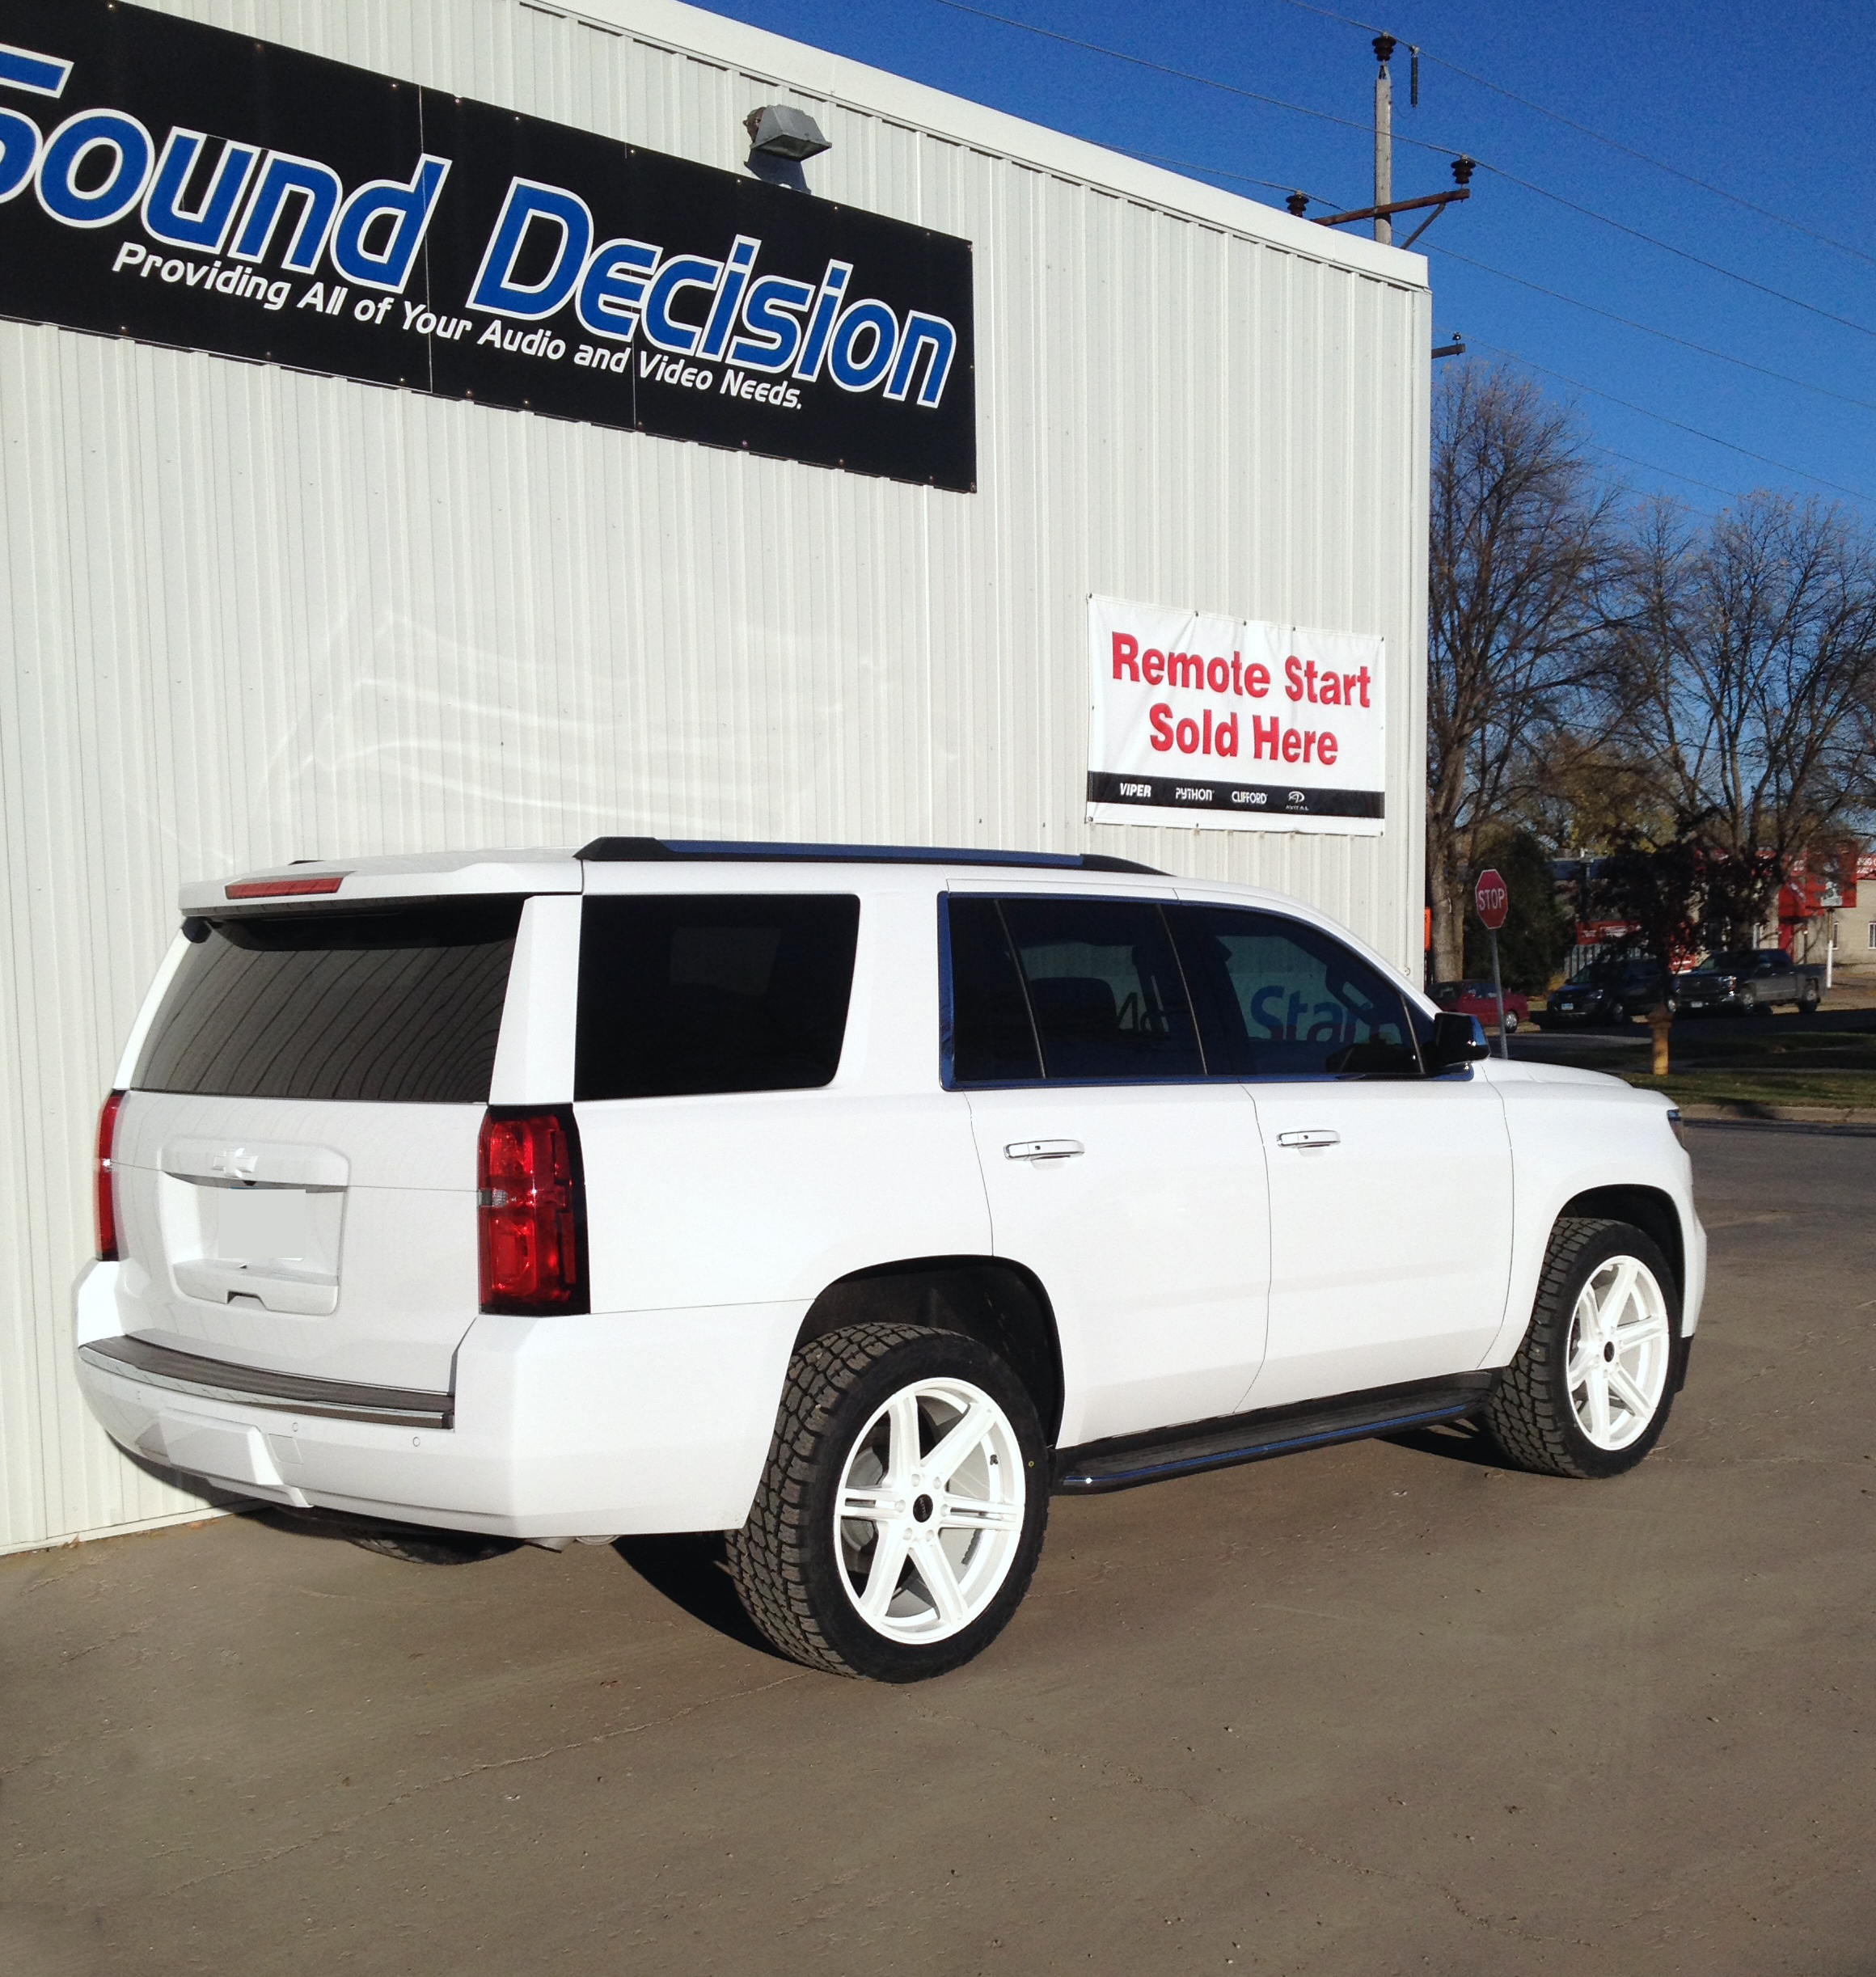 2015 Chevy Tahoe Custom Powder Coated KMC Wheels, Stripped Emblems, Painted Bowties to Match